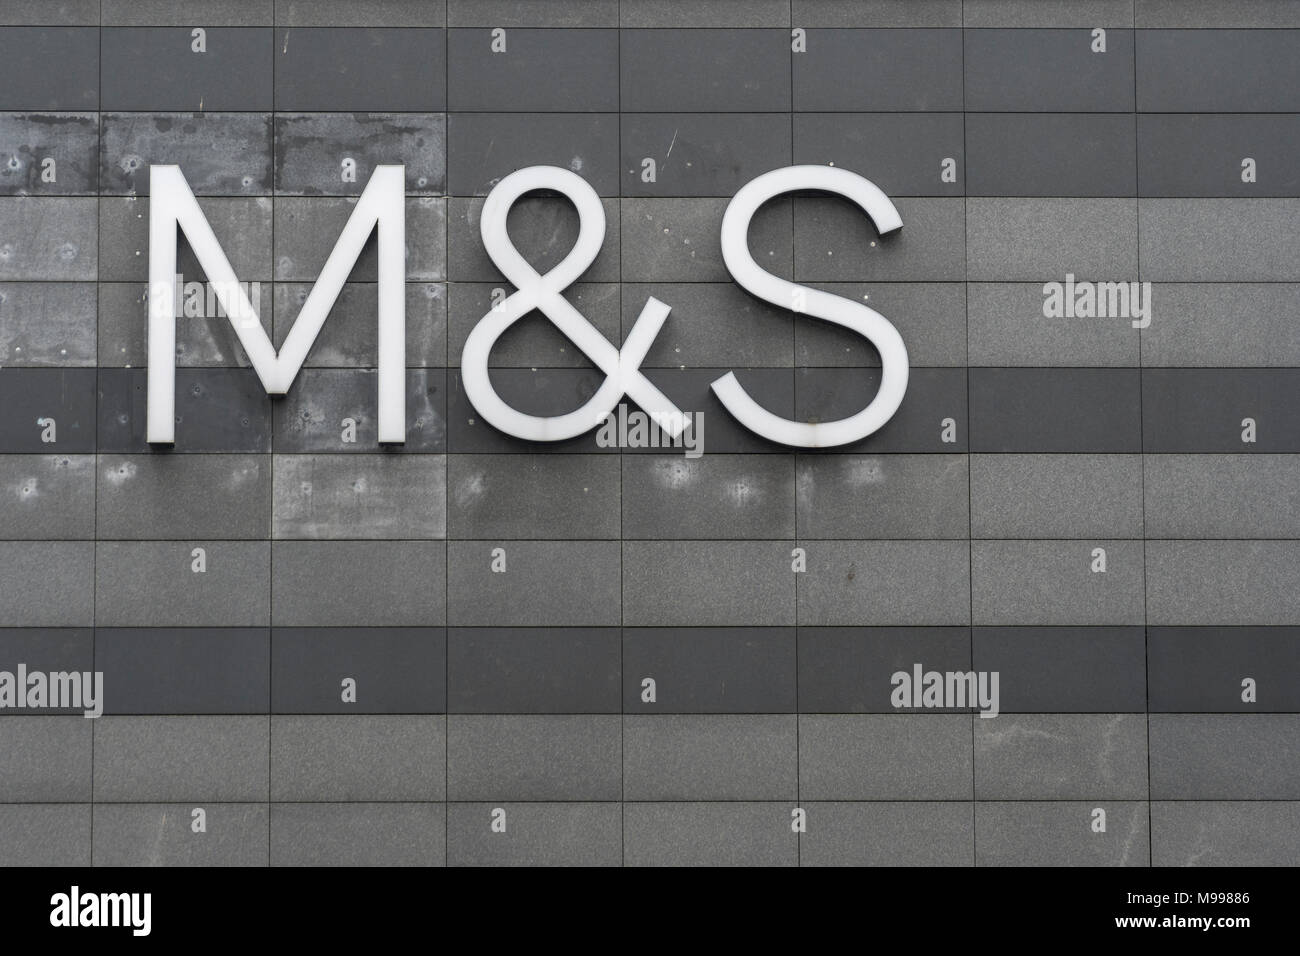 Marks and Spencer / M&S logo at Drake Centre mall, Plymouth. Possible metaphor for M&S store closures 2018, profit warning, profits plunge, job cuts. Stock Photo